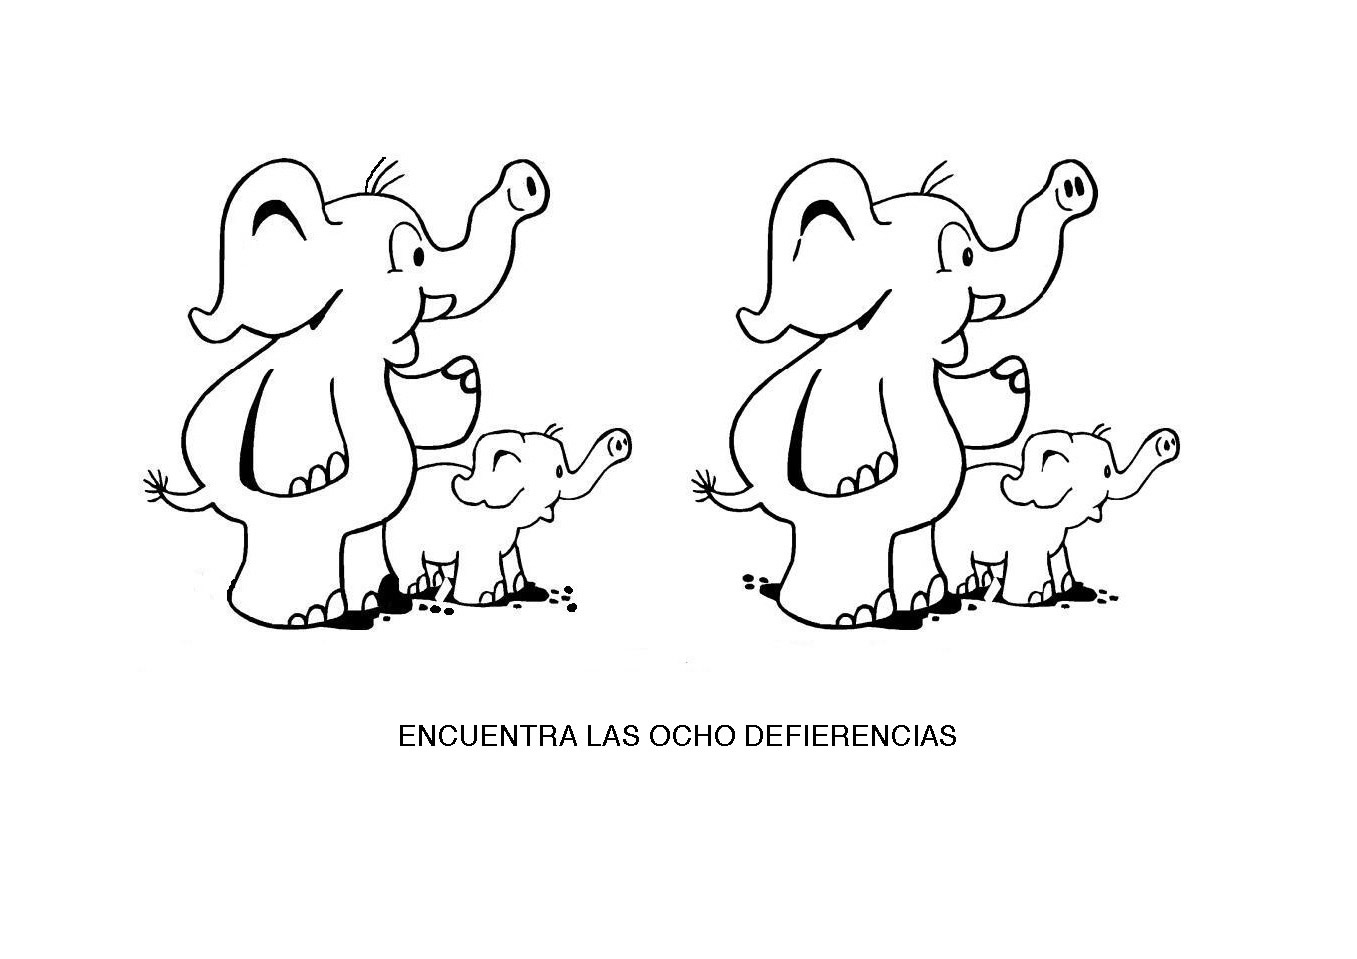 Encontrar las diferencias